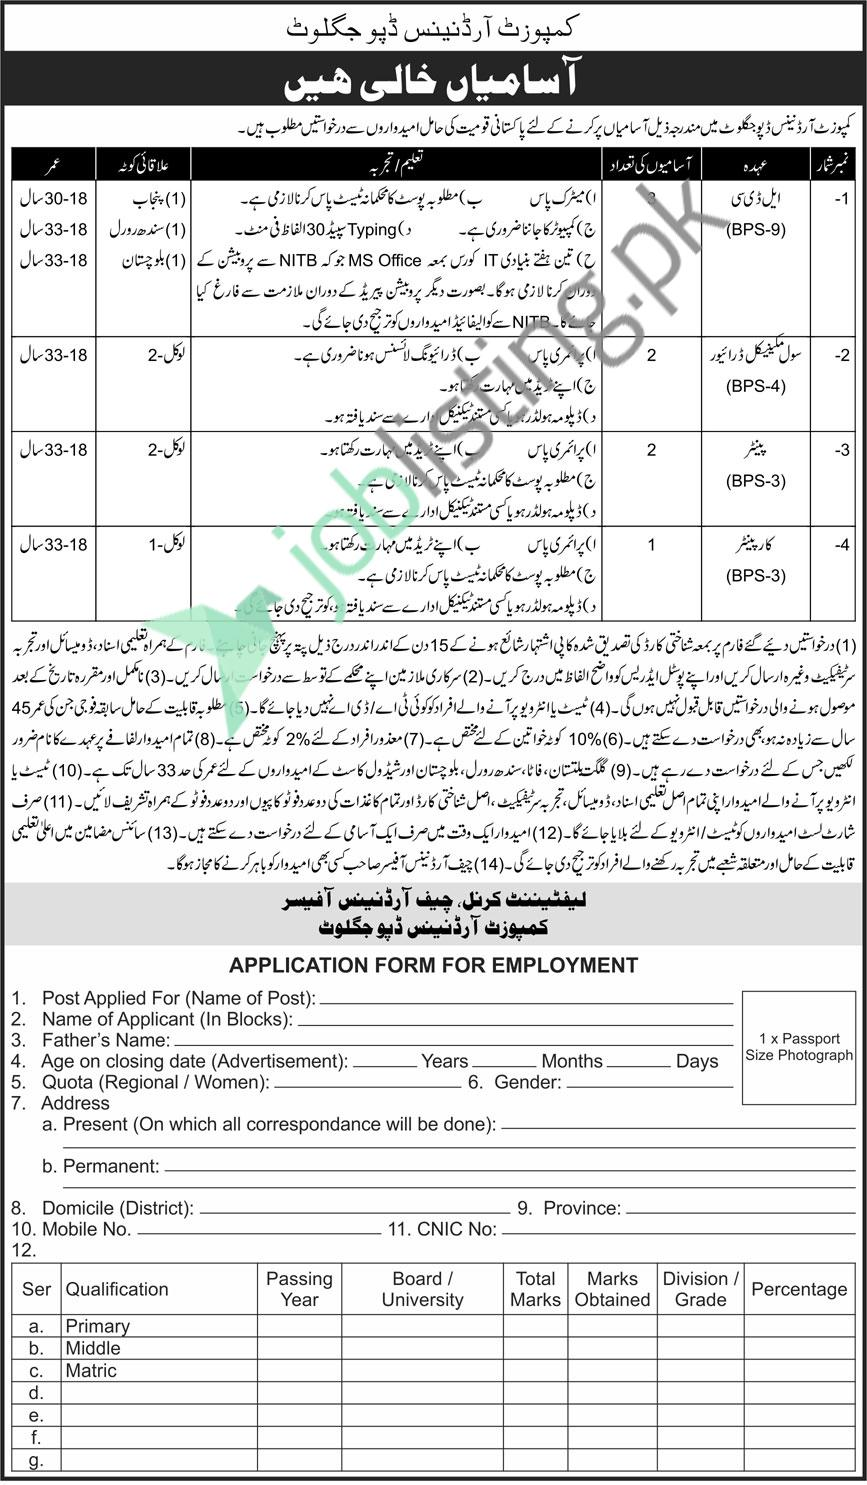 Situation Vacant in Pak Army 2021 at Composite Ordnance Depot Jaglot Gilgit Baltistan